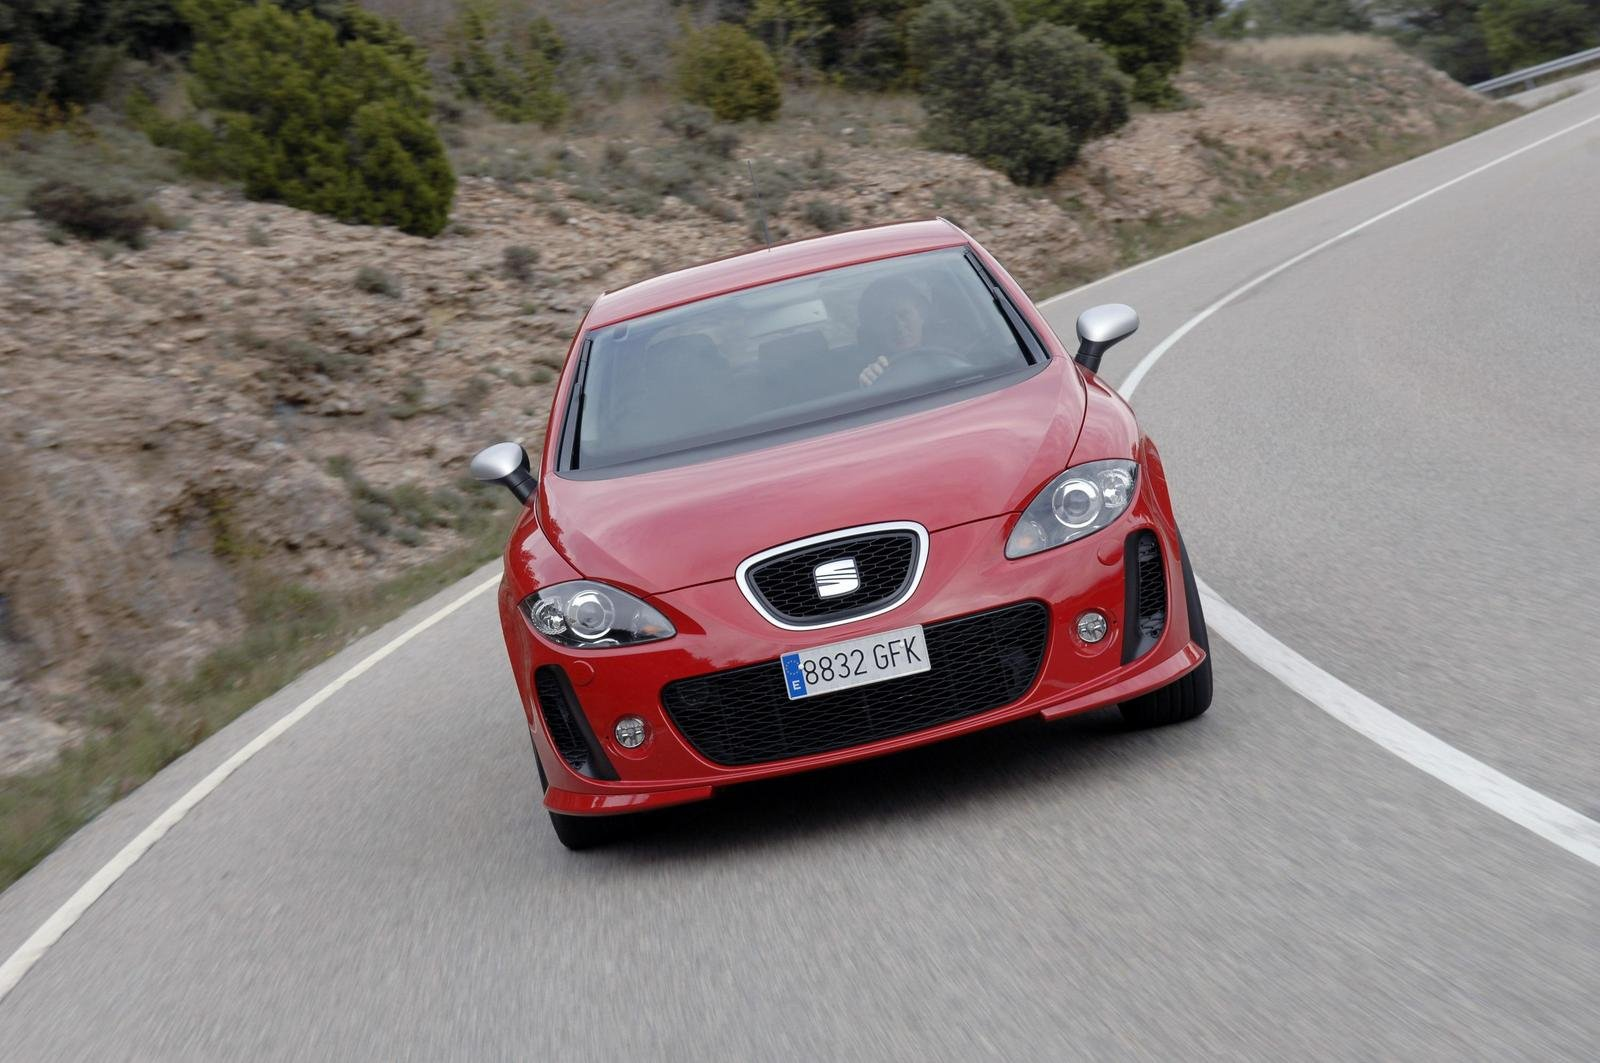 2009 seat leon linea r picture 272751 car review top speed. Black Bedroom Furniture Sets. Home Design Ideas